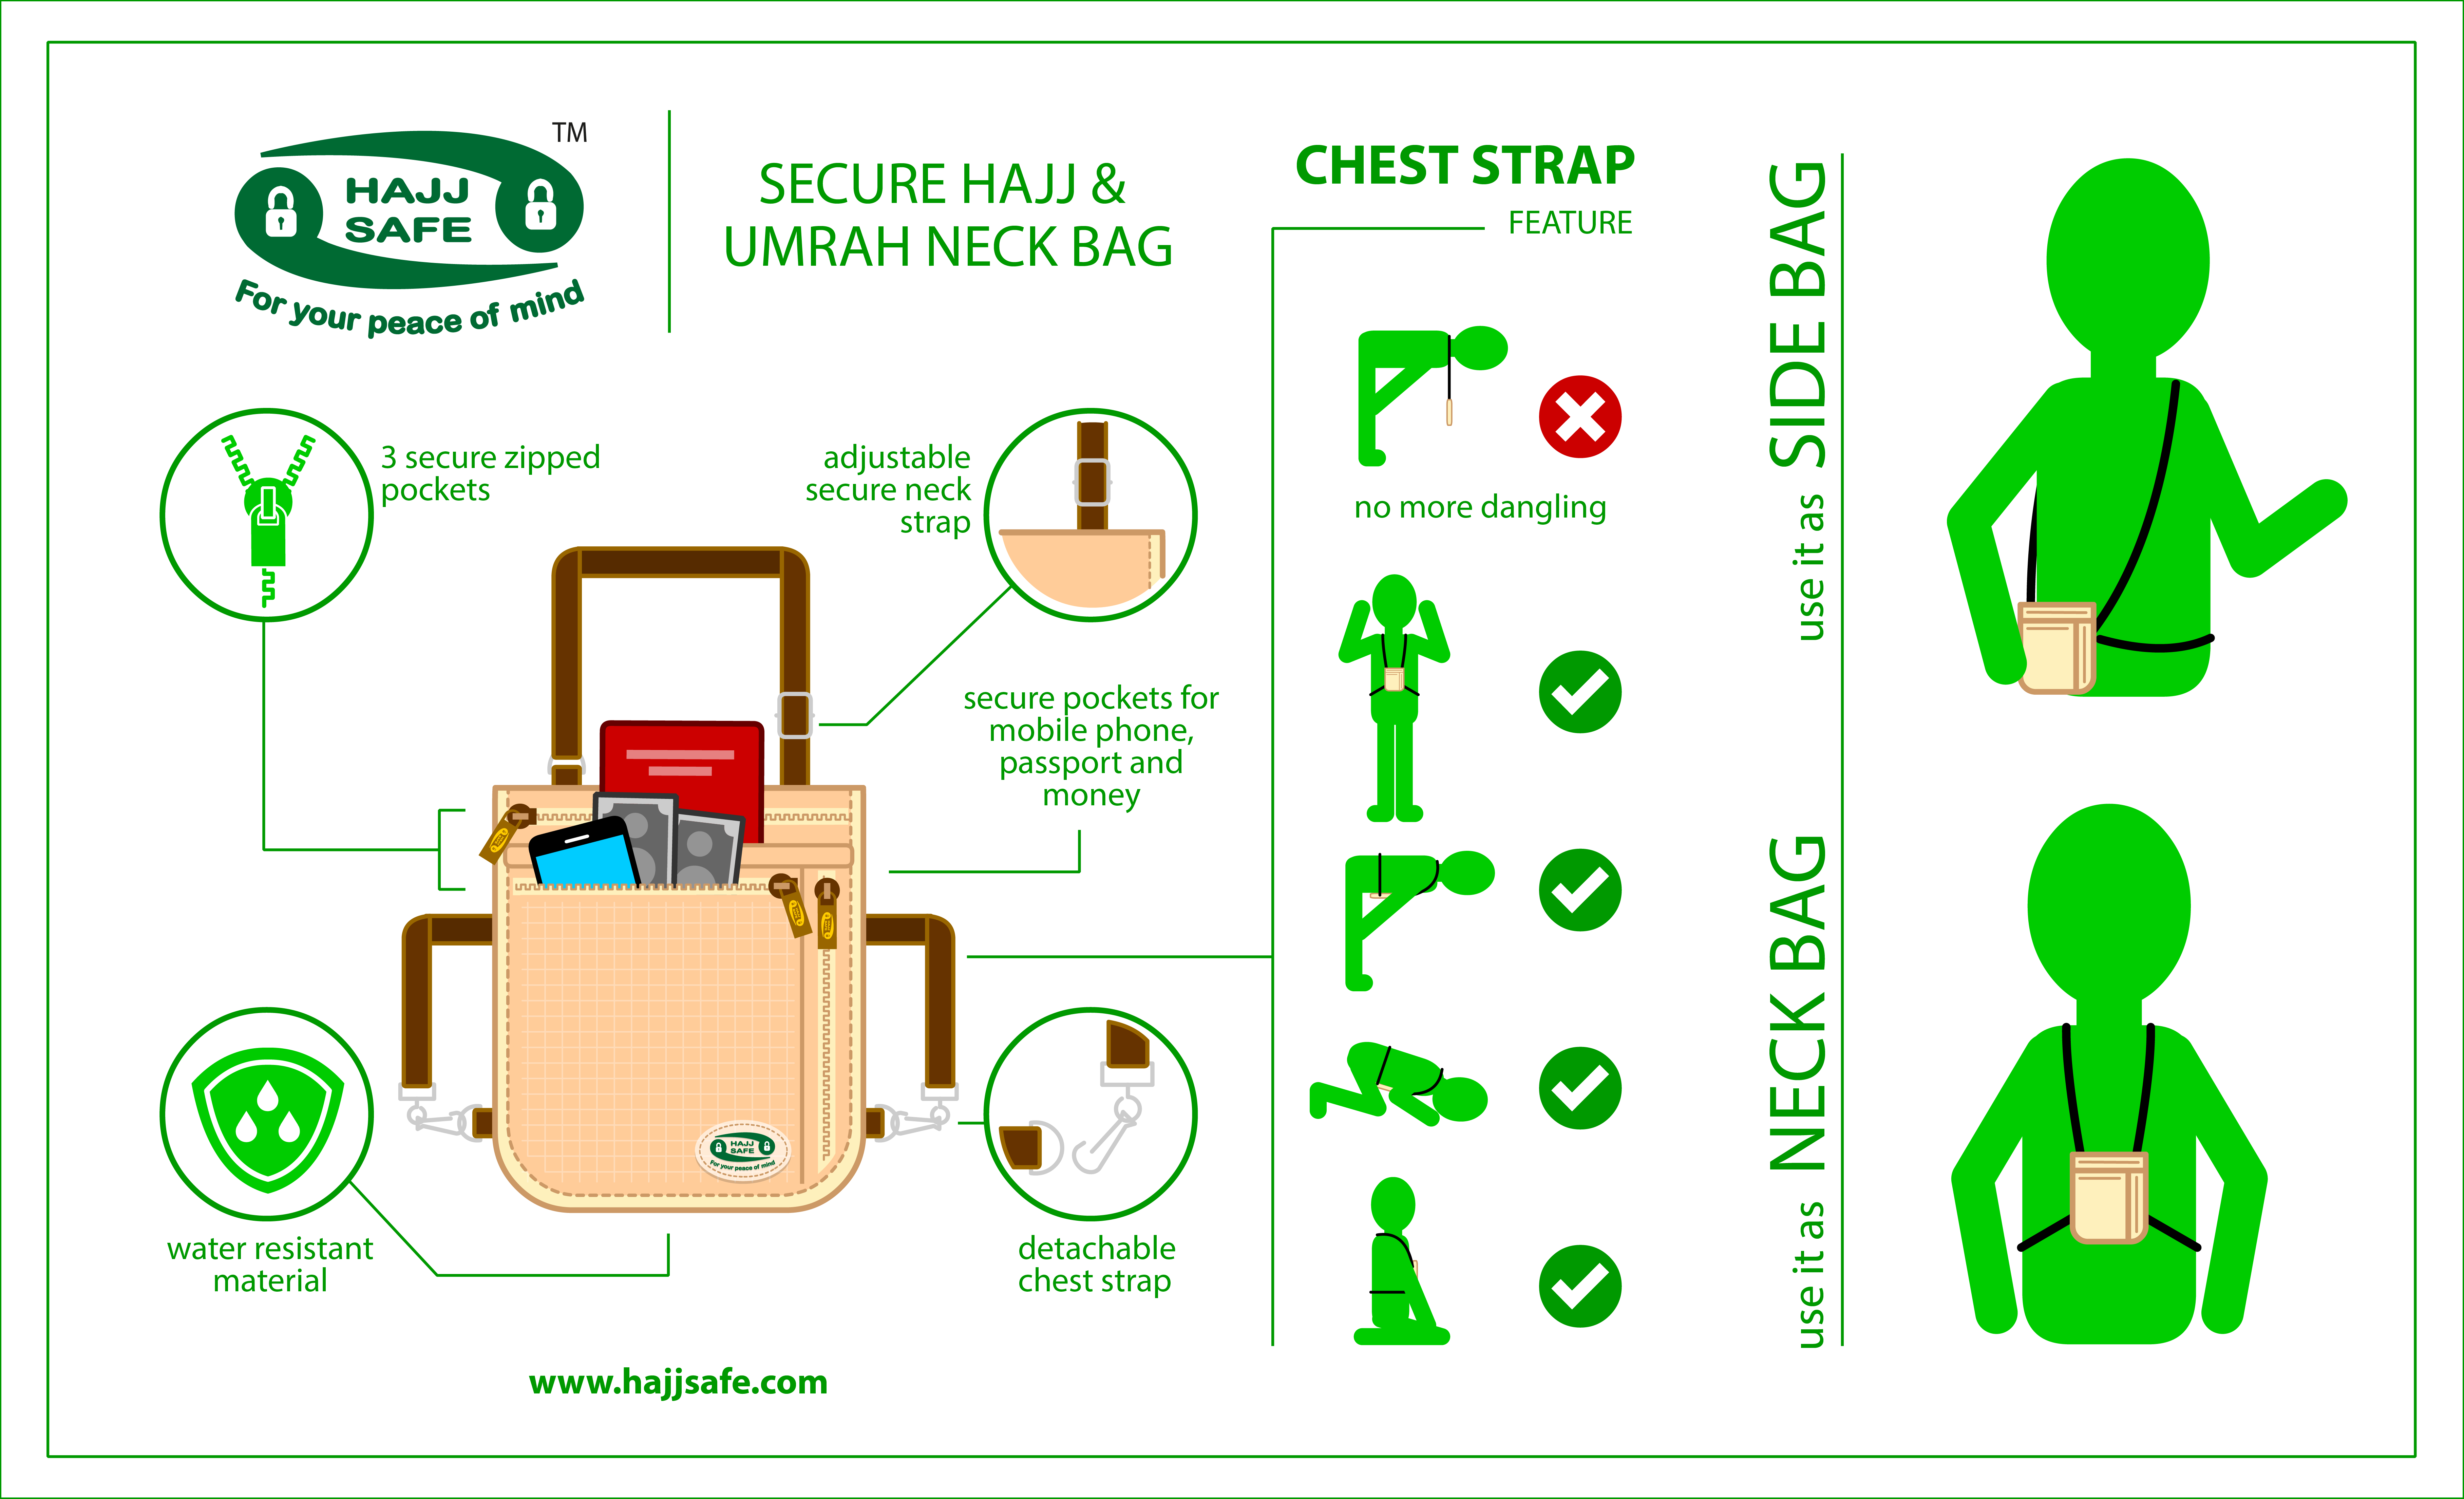 hajj-safe-secure-neck-bag-1.1.png